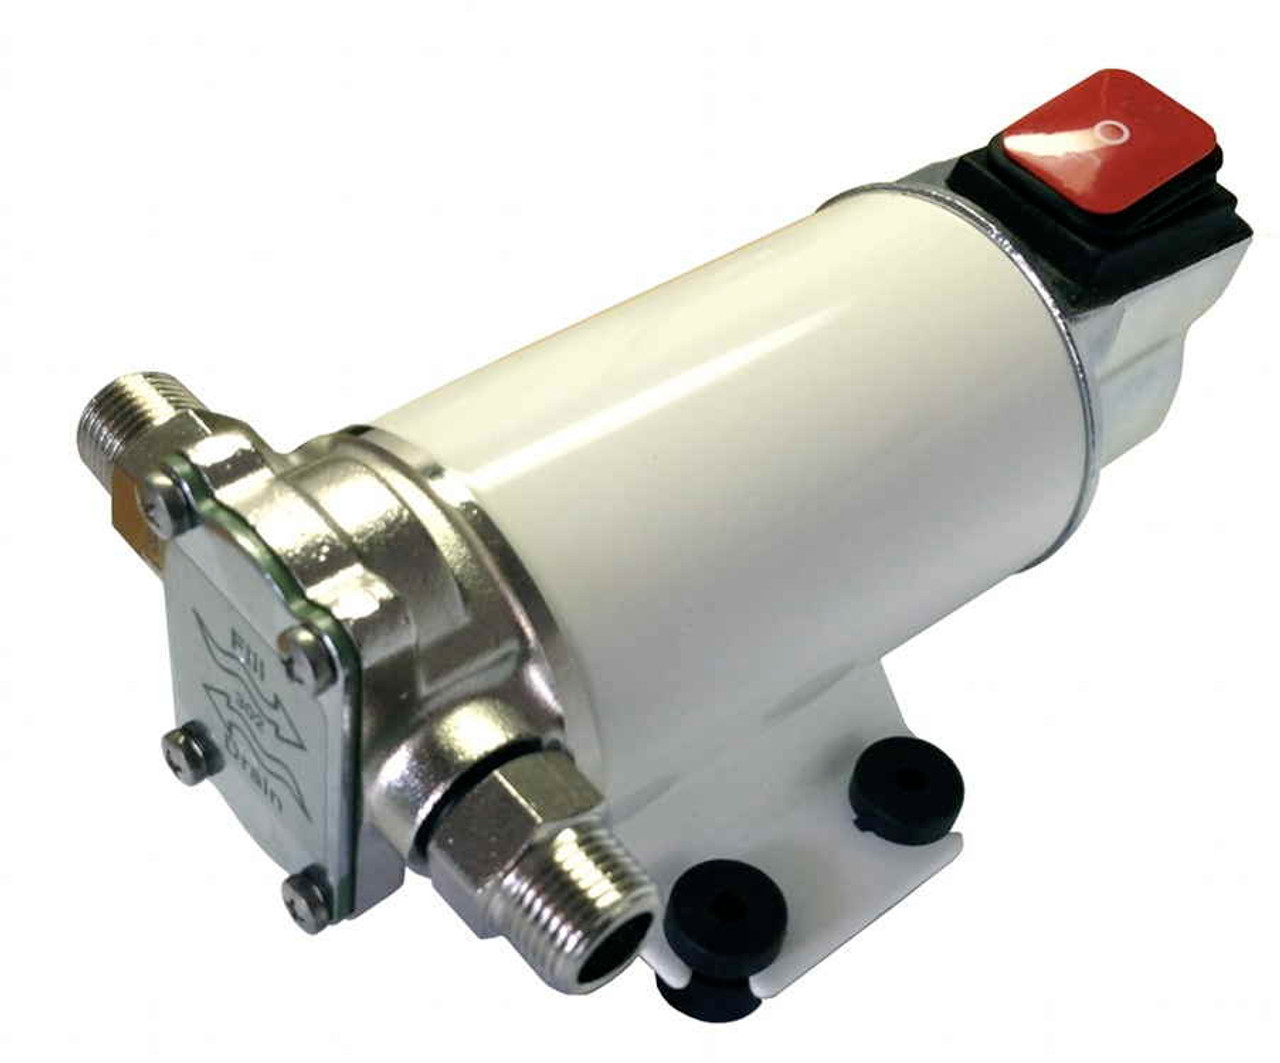 4 GPM GEAR PUMP 24V FOR WATER OR DIESEL FUEL WITH ON/OFF SWITCH AND FUSE (GP-301S-24H)